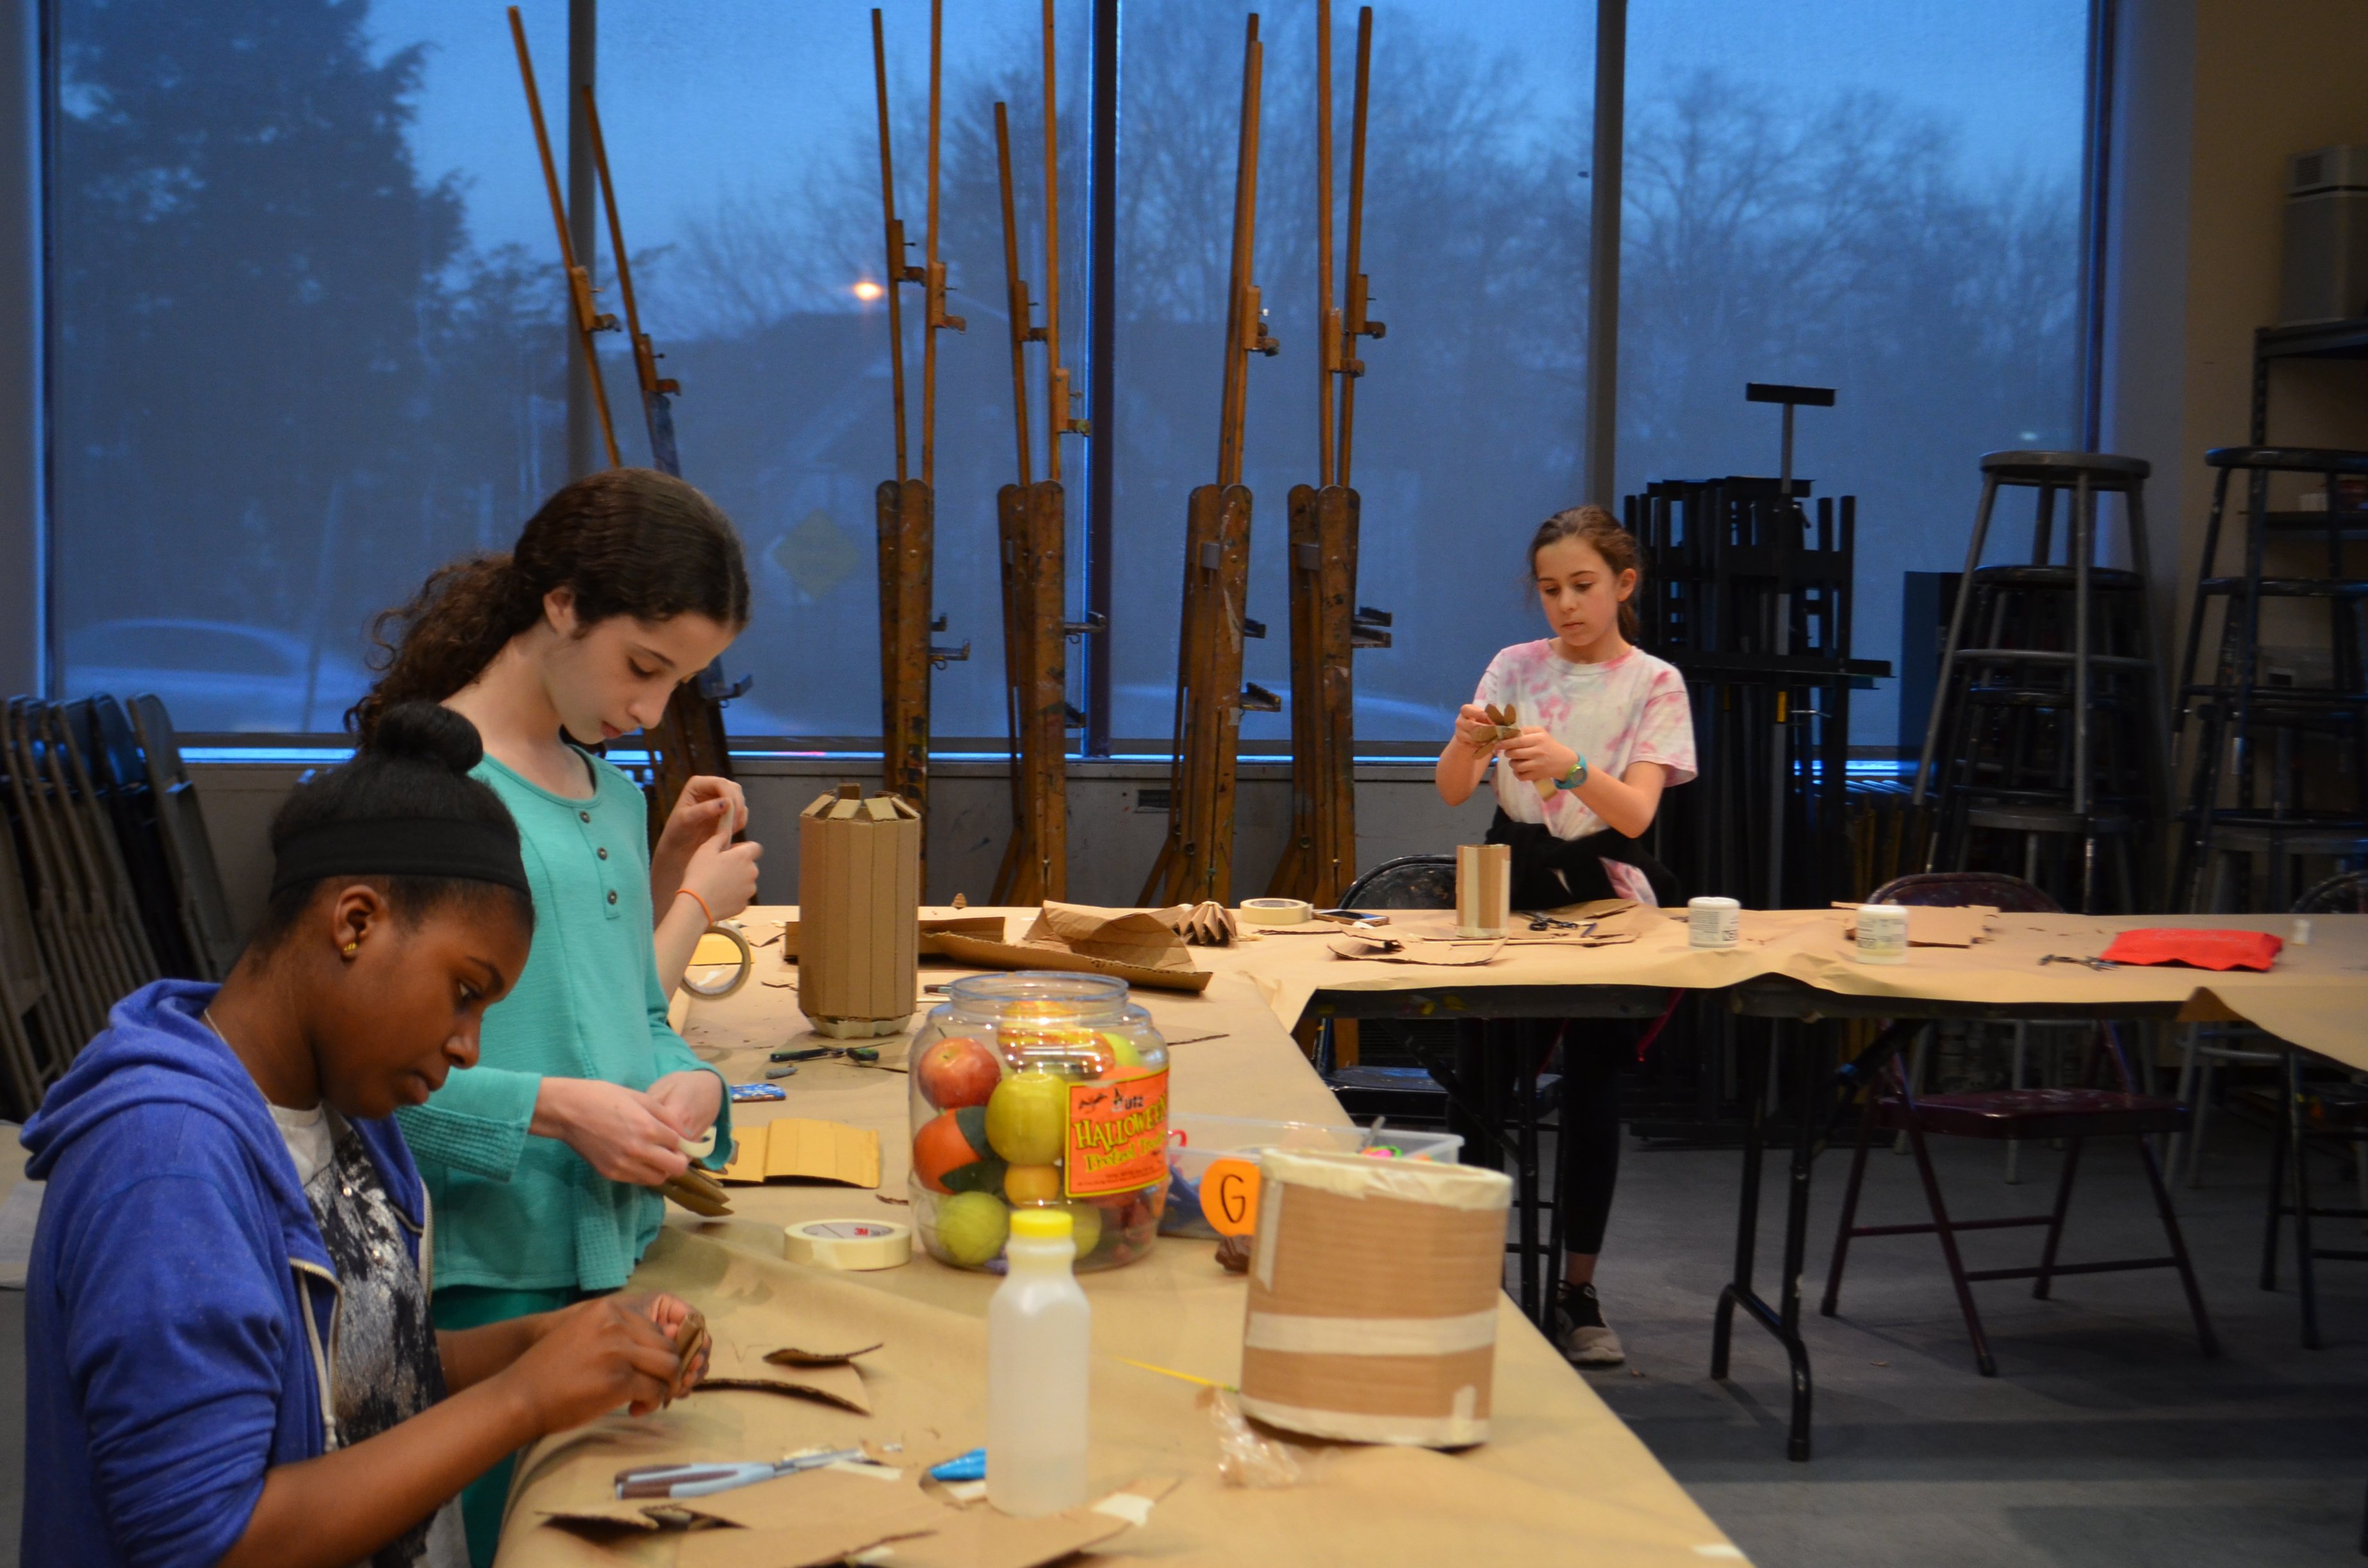 Home School Day at MontclairArt Museum